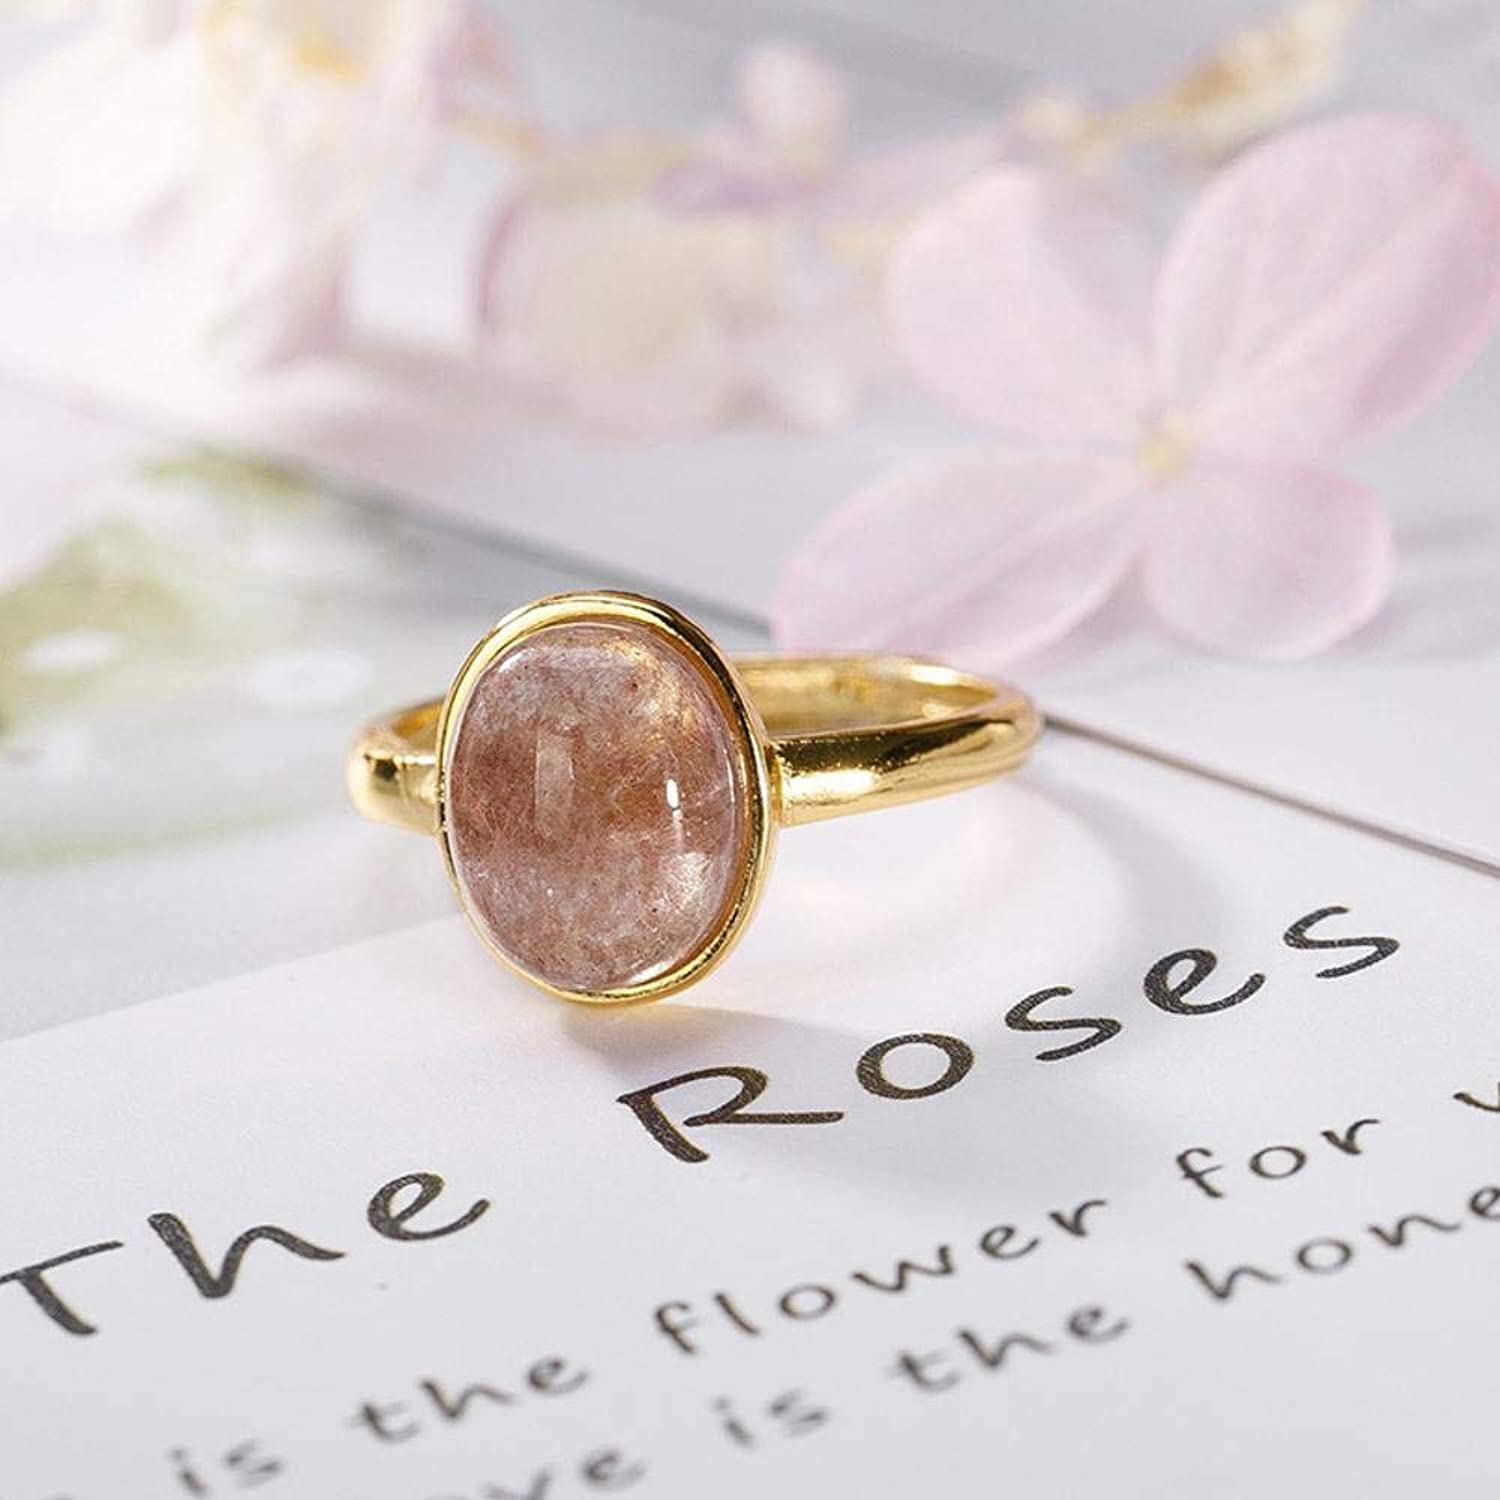 DTZH Rings Jewellery Ring S925 Sterling Silver goldPlated Natural Strawberry Crystal Lady Ring Gift to Dear People